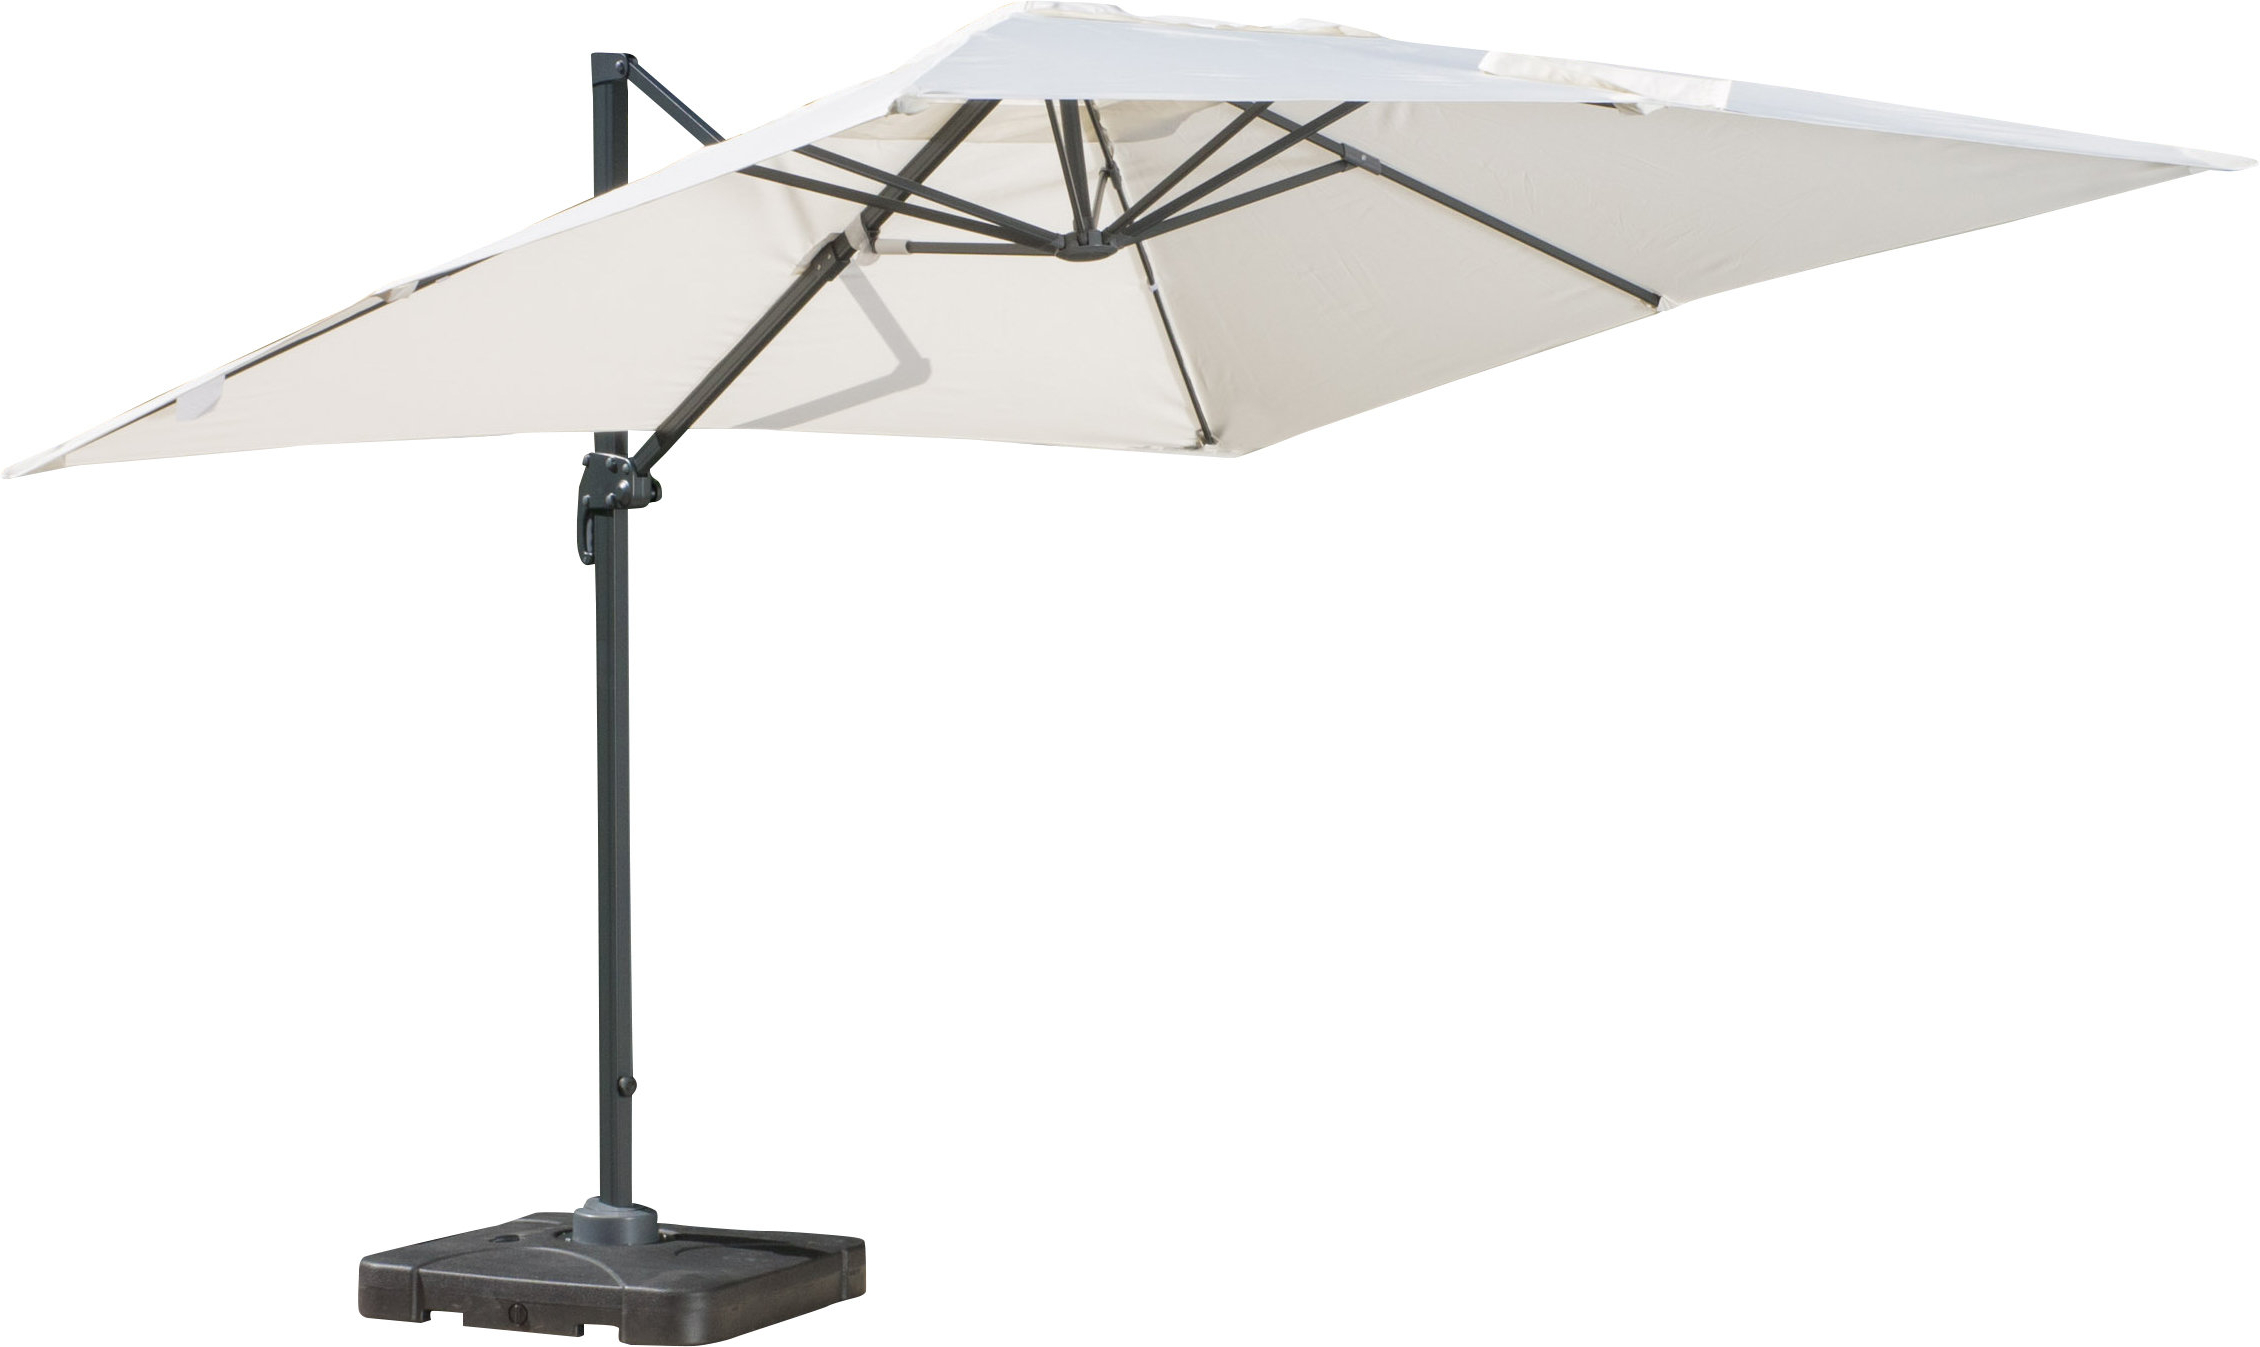 Best And Newest Muhammad Fullerton Cantilever Umbrellas Throughout Boracay 10' Square Cantilever Umbrella (View 13 of 20)